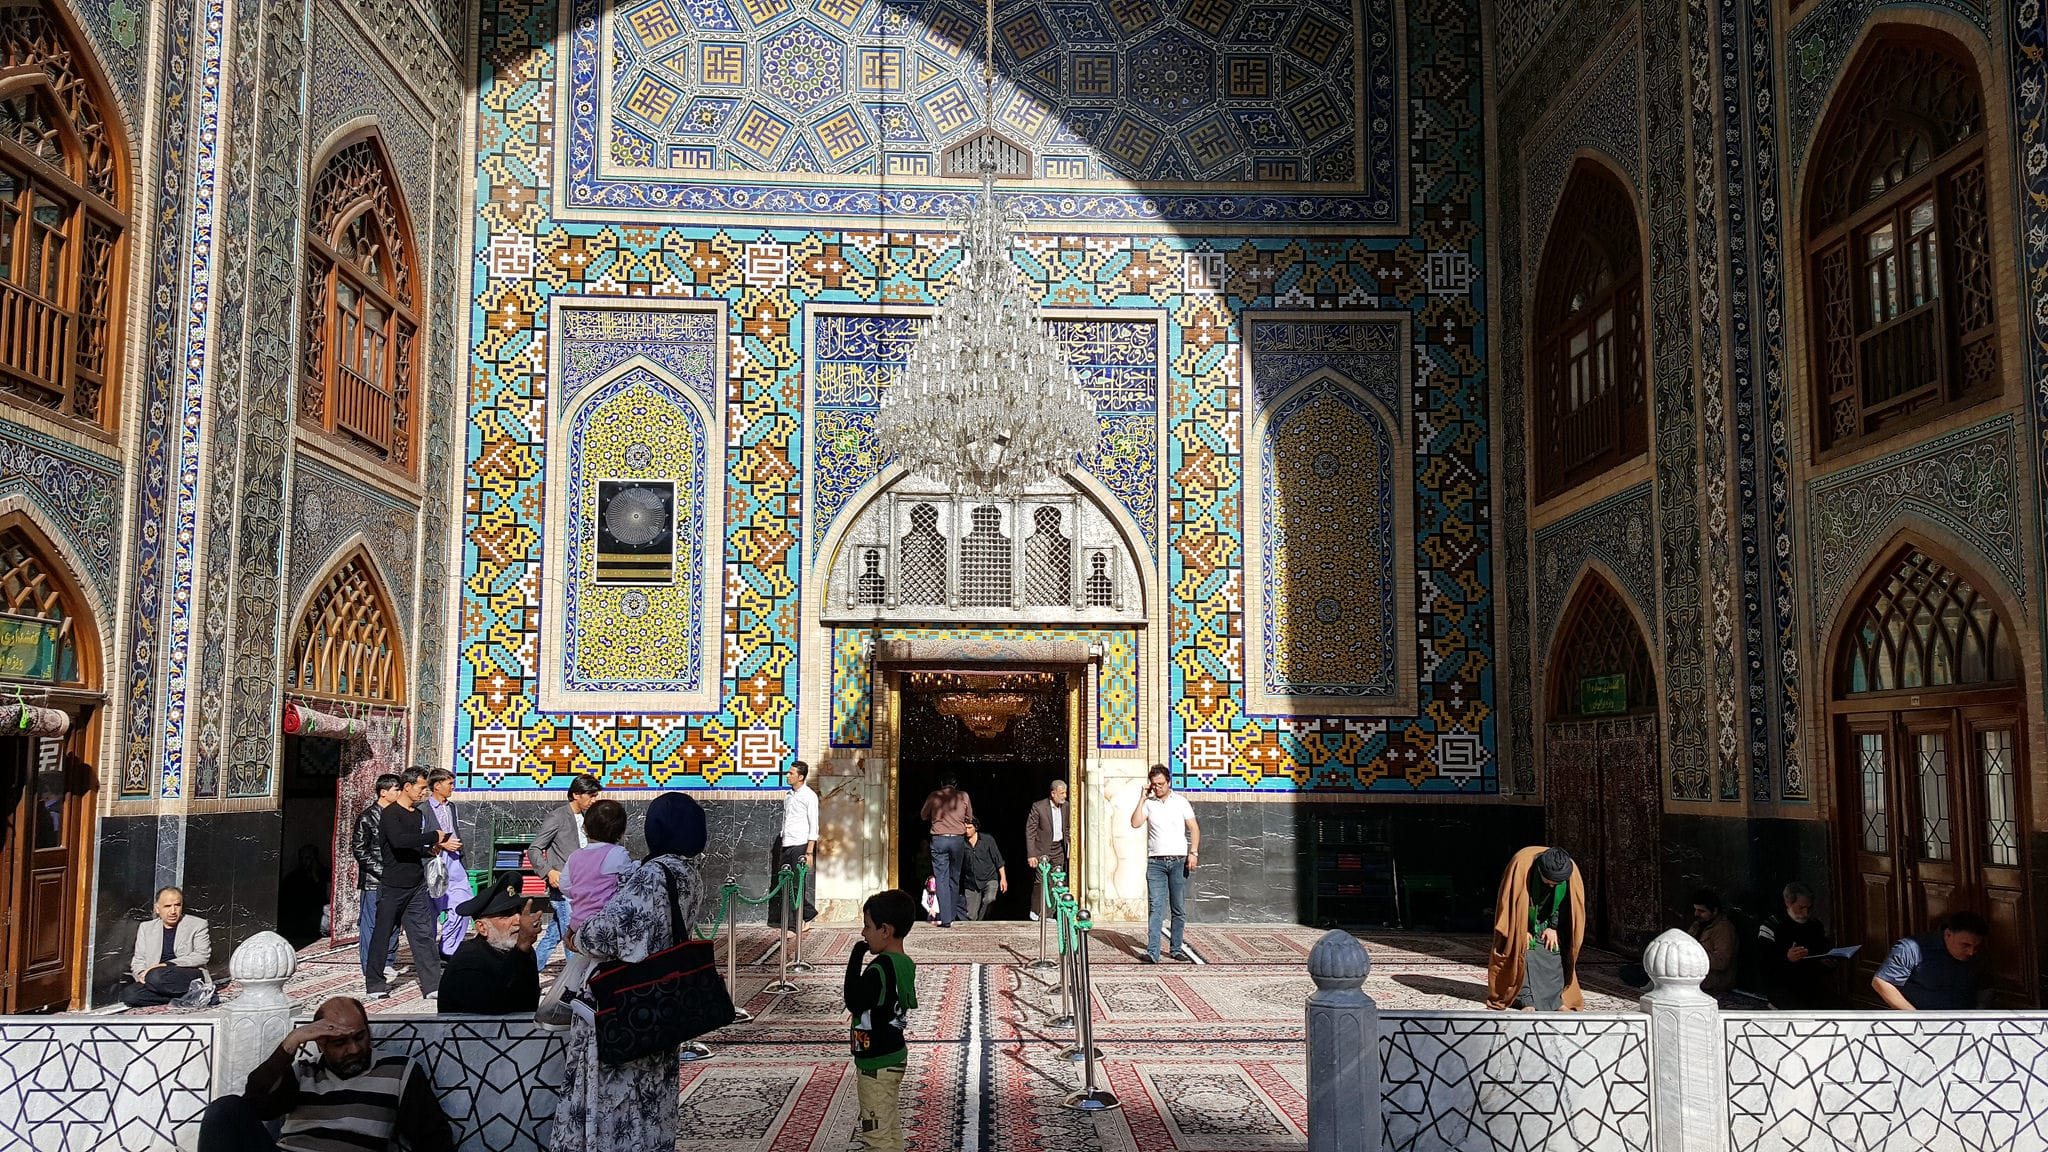 Two week Iran travel itinerary - Shrine of Imam Reza in Mashhad, Iran